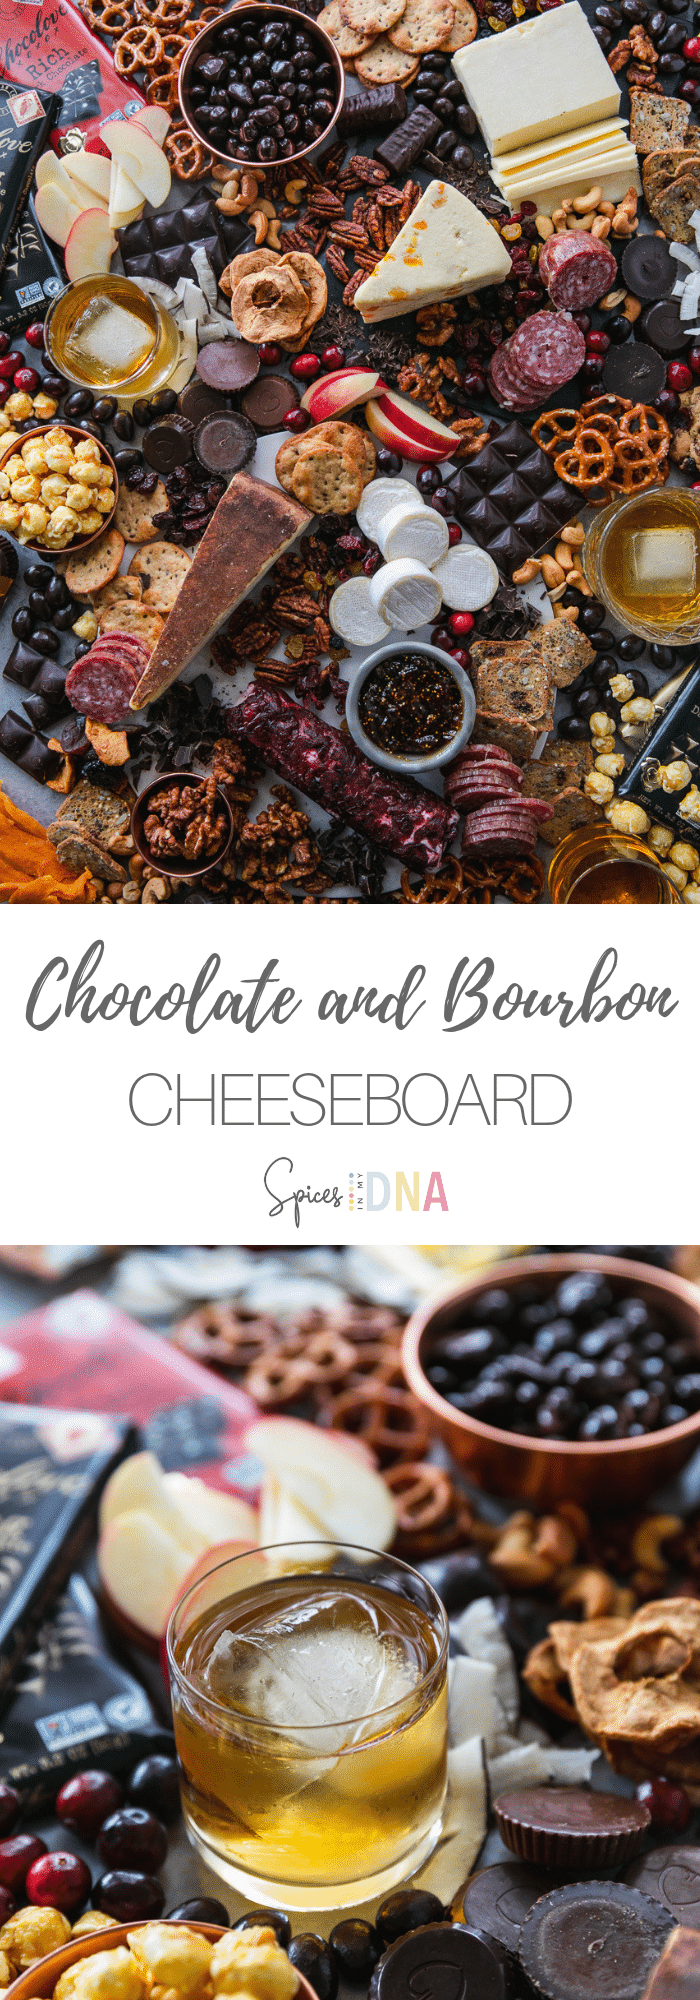 This Chocolate and Bourbon Cheeseboard is such a fun spread to serve to guests during the holidays! It's filled with your favorite cheeses, dark chocolate, crackers, fruit, preserves, candy, nuts, and glasses of bourbon! It's the perfect dessert or appetizer board to entertain with this holiday season - such a crowd pleaser! #cheeseboard #chocolate #dessert #holidayentertaining